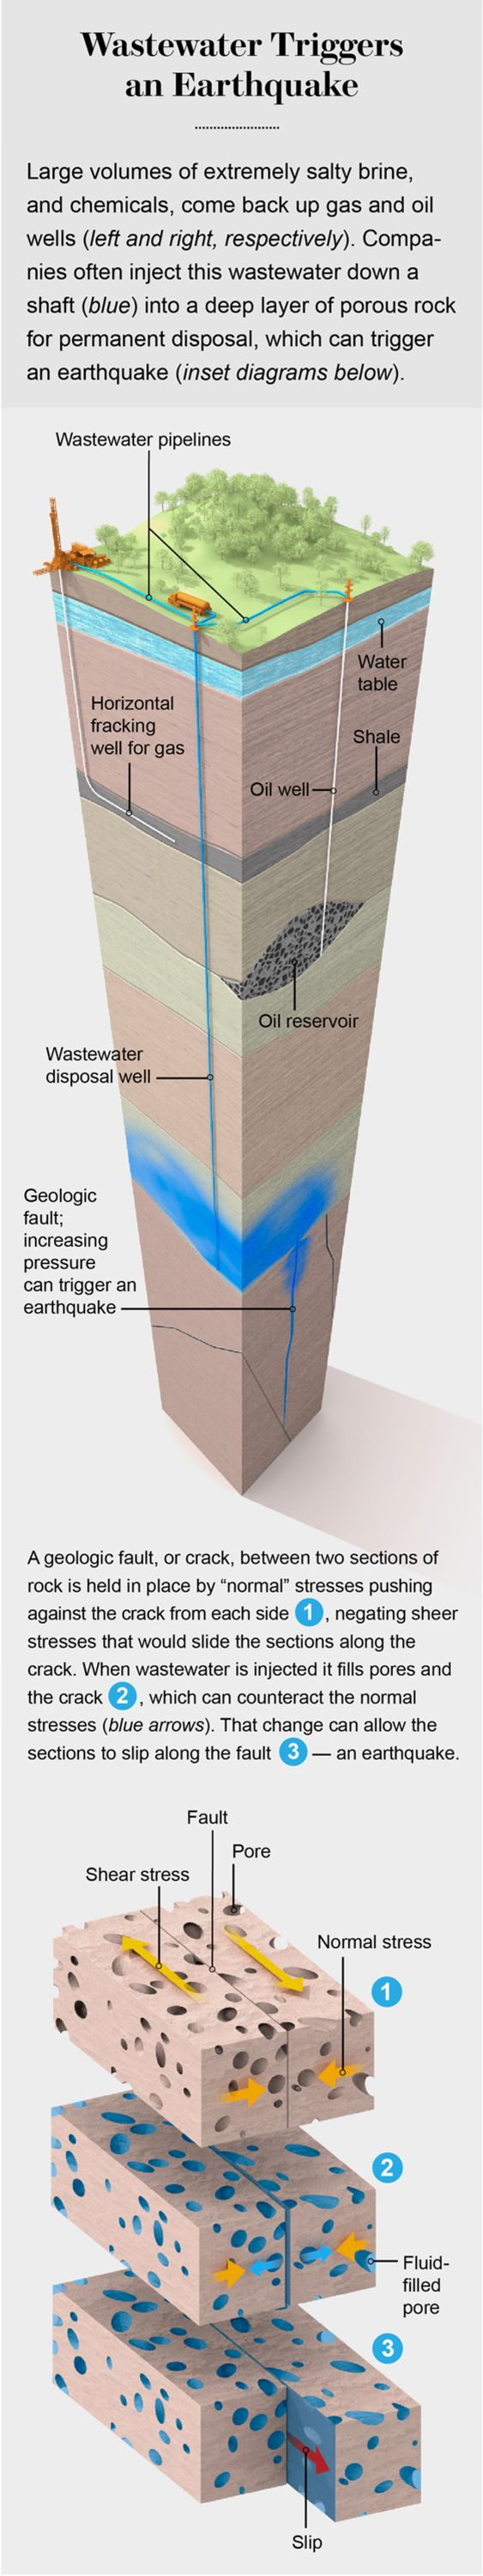 Drilling For Earthquakes Scientific American Oil Well Diagram Of An Drill It Started In Texas